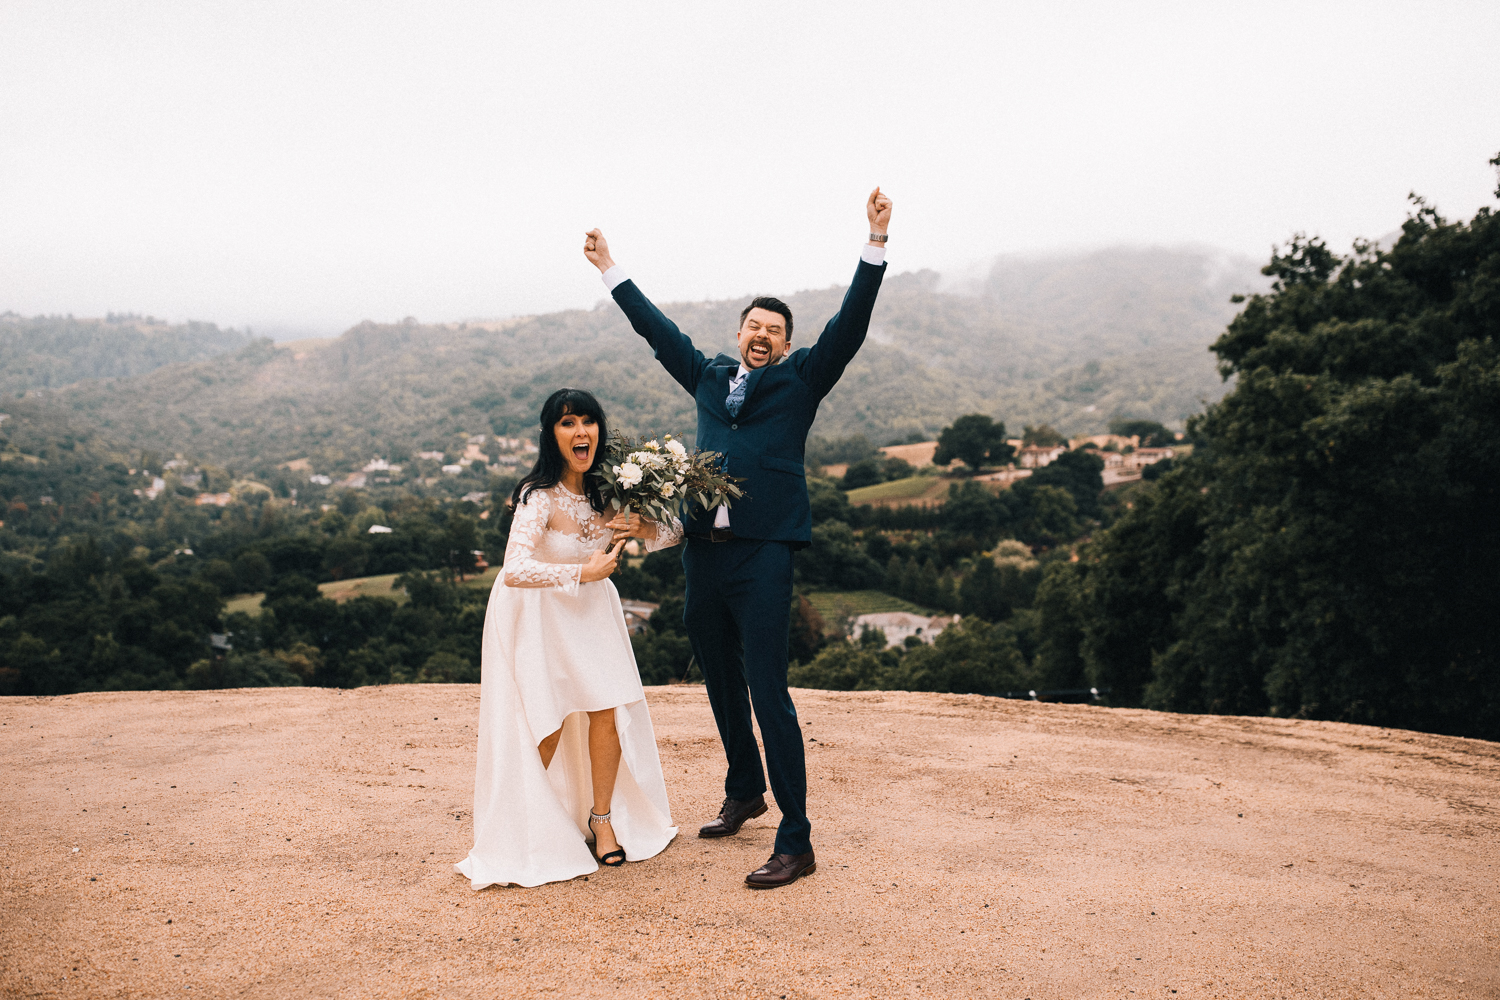 2019_05_ 182019.05.19 Lisa + Eddie South Bay Wedding Blog Photos Edited For Web 0109.jpg